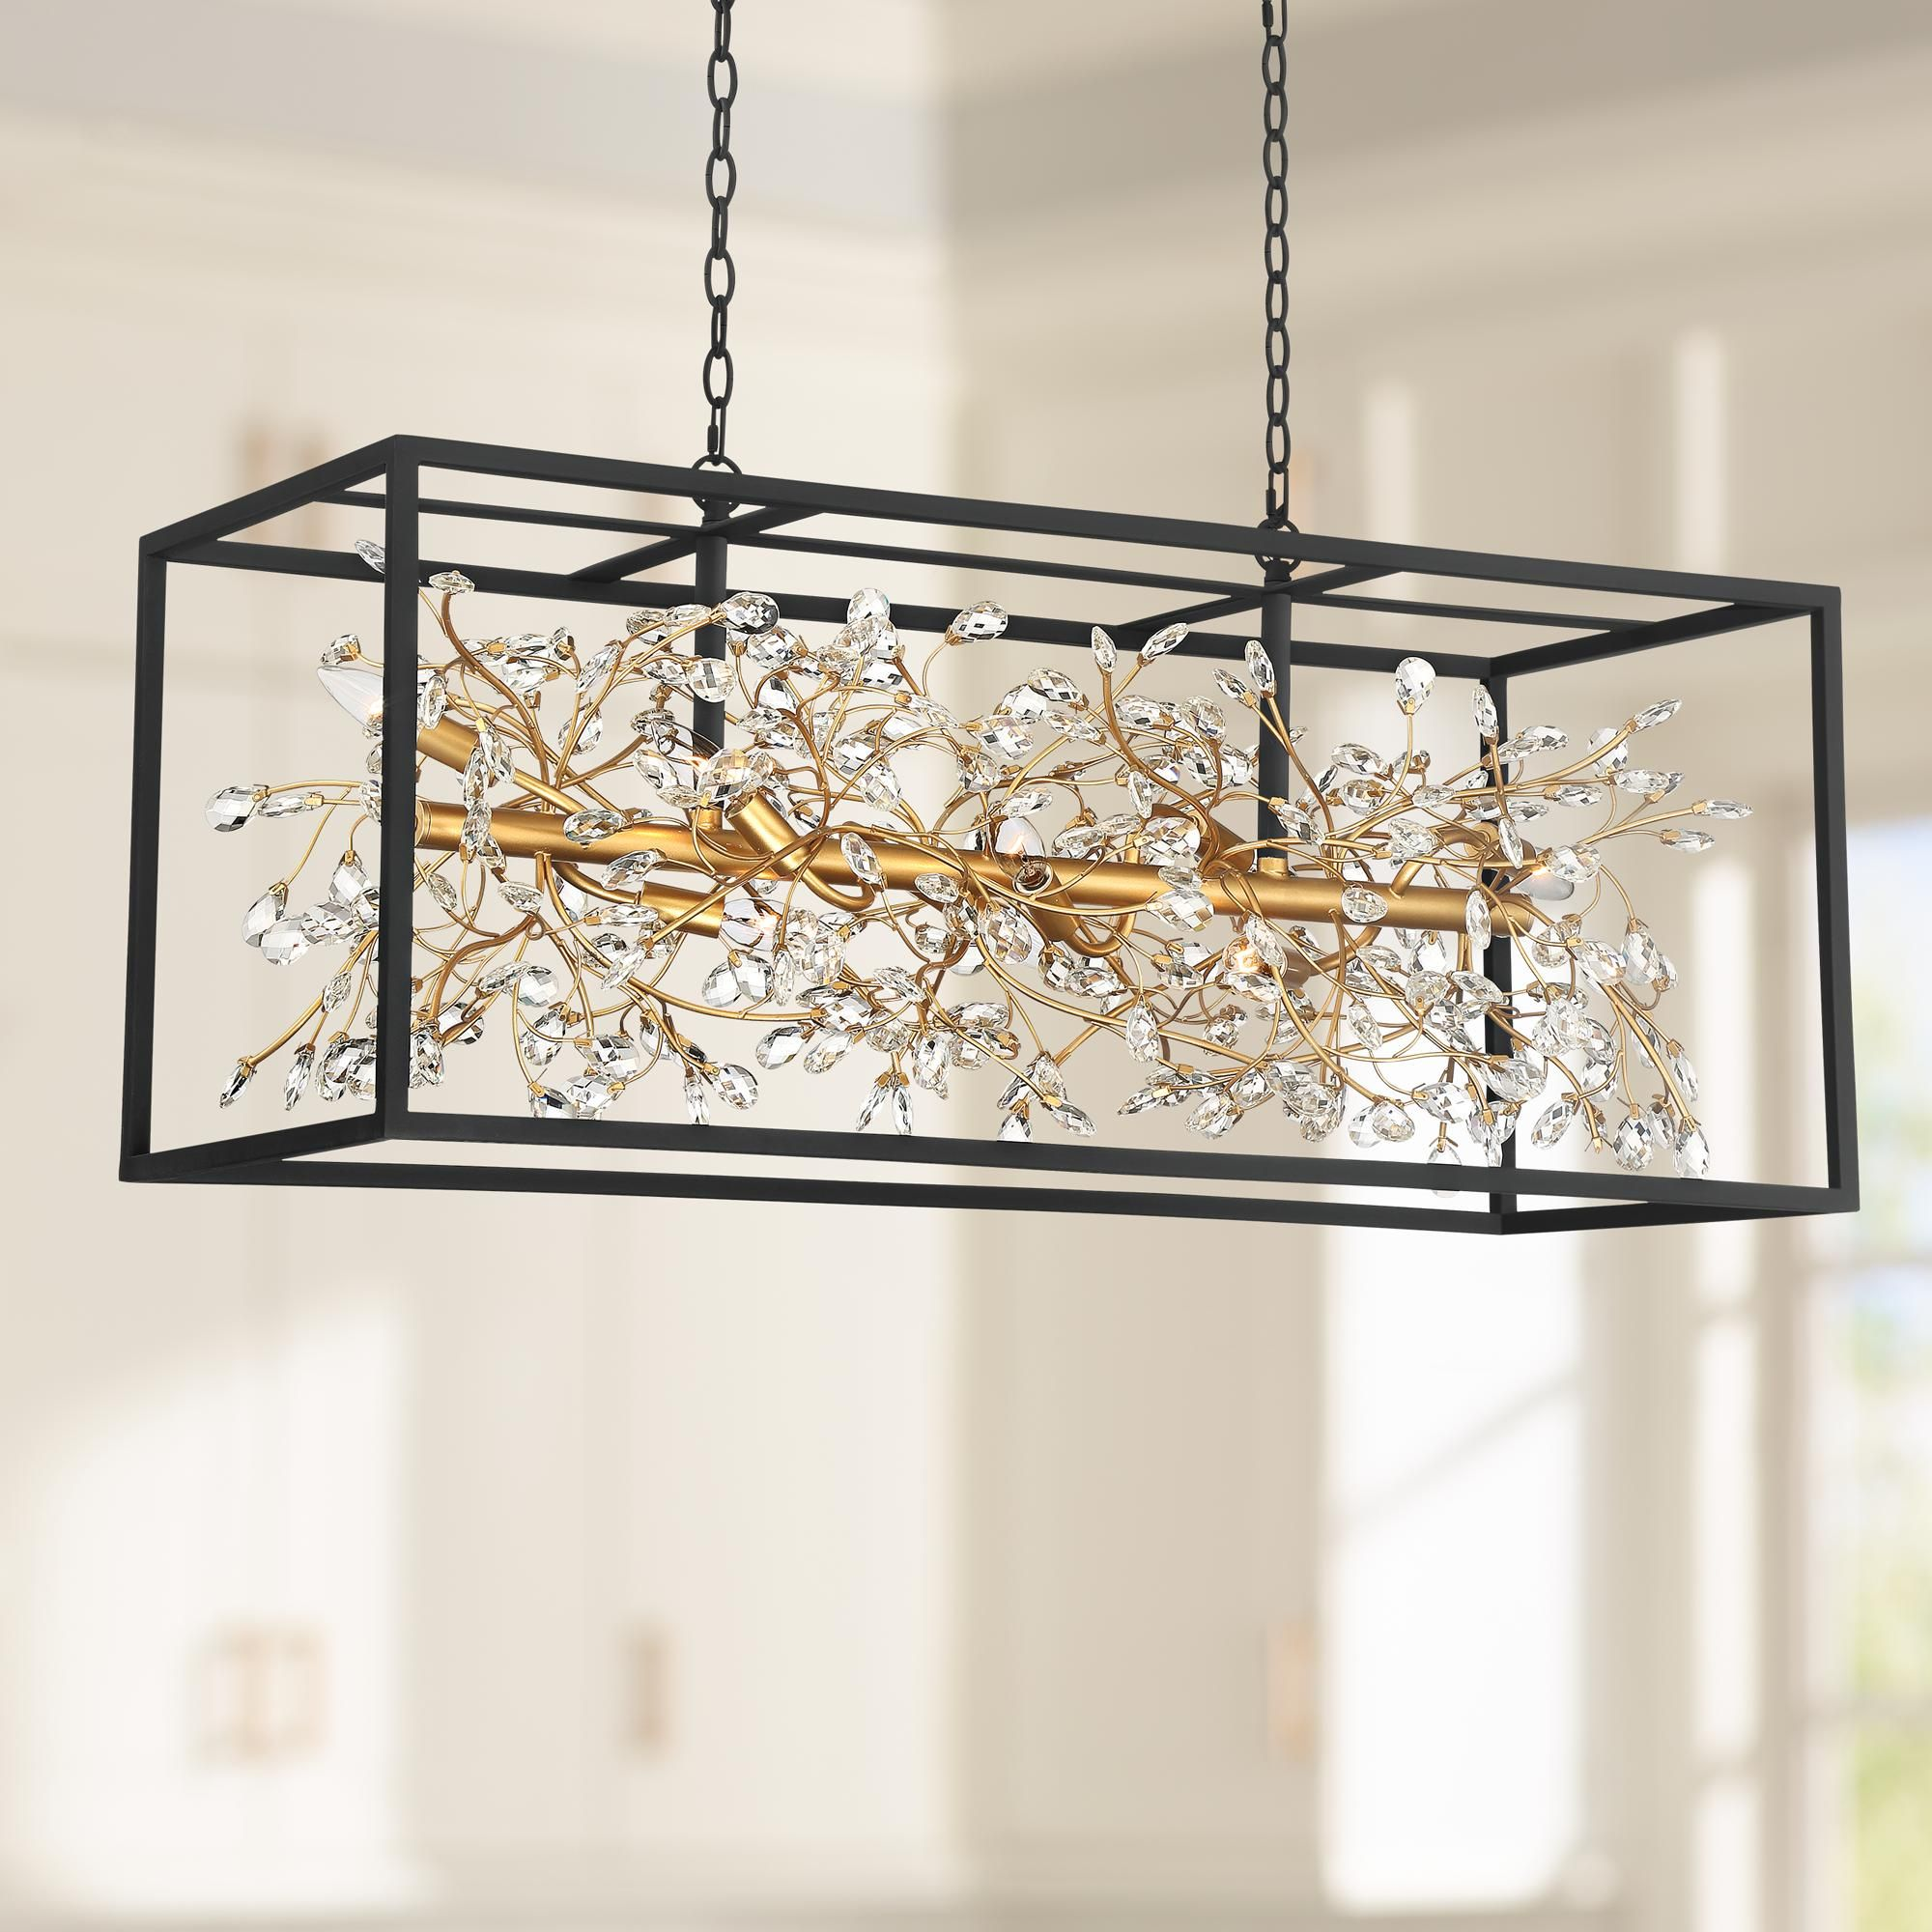 Chandeliers Carrine 38 1 2 W Black And Gold Kitchen Island Light Pendant In 2020 Kitchen Island Lighting Kitchen Island Lighting Pendant Gold Kitchen